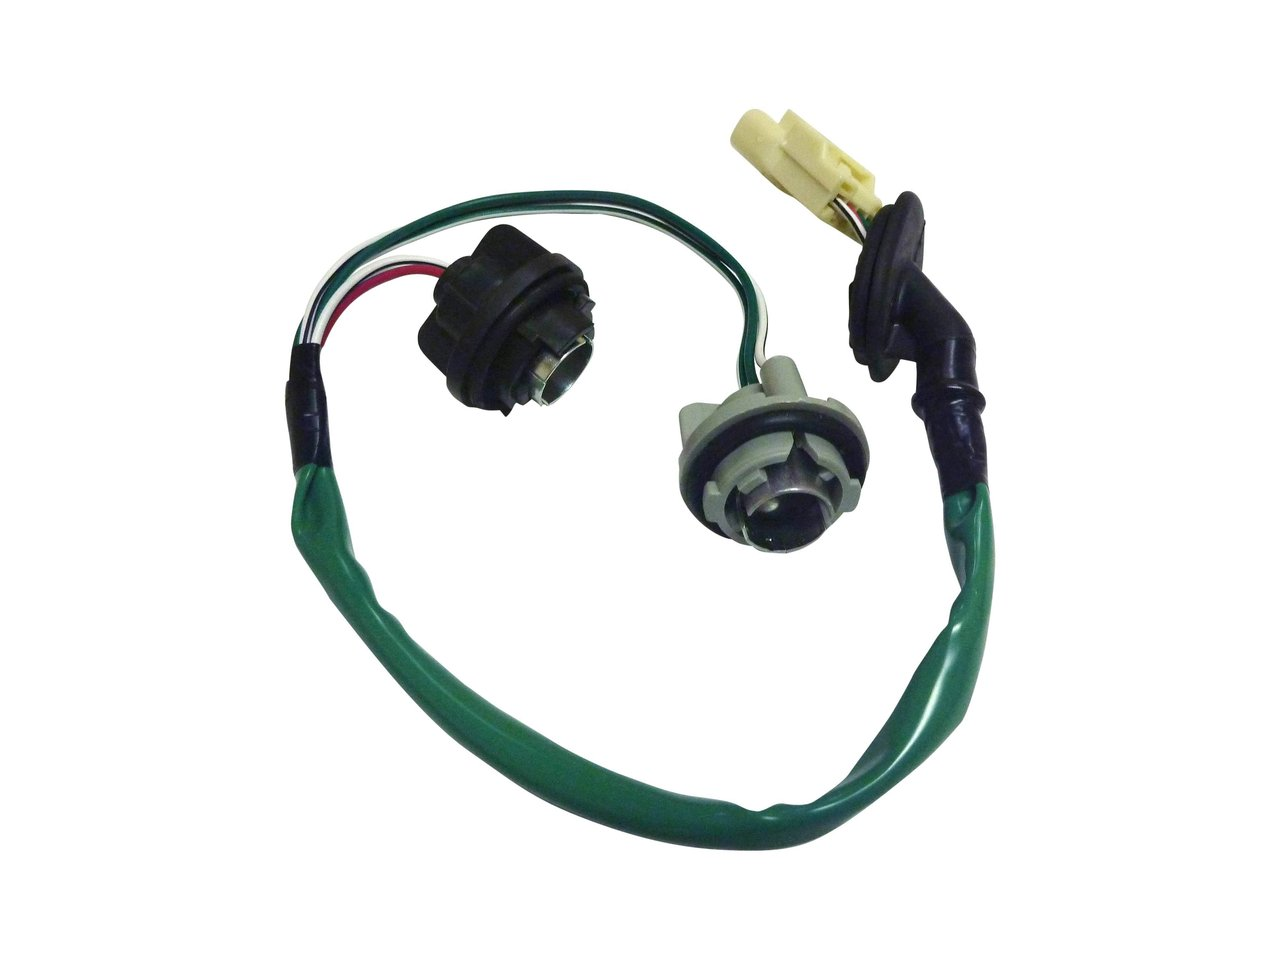 Tail Light Wiring Harness Rhs Suitable For Landcruiser